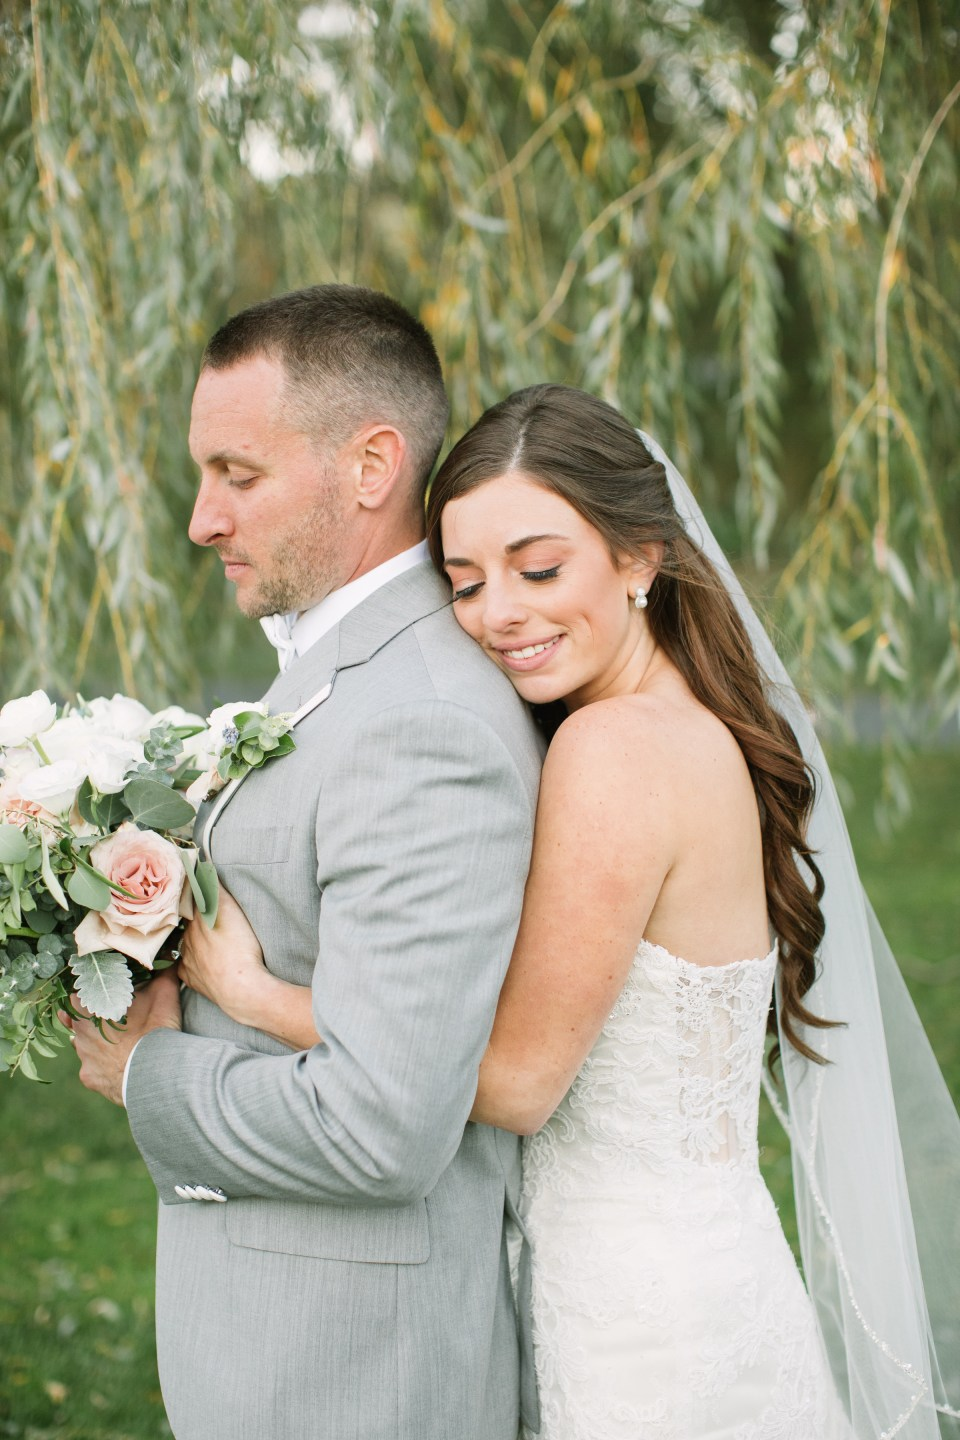 Ashley Mac Photographs photographs bride and groom on their wedding day in New Jersey